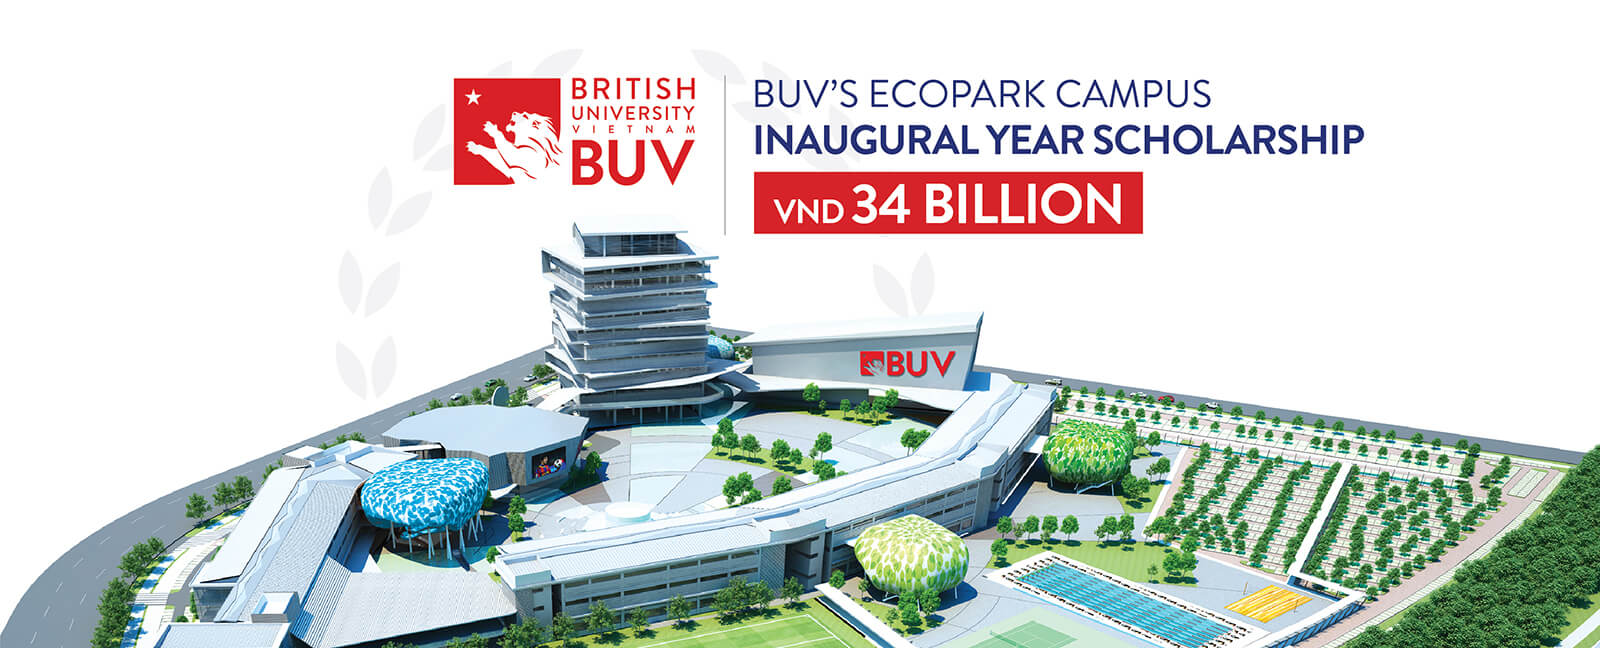 BUV HAS OFFICIALLY LAUNCHED THE 'BUV'S ECOPARK CAMPUS INAUGURAL YEAR SCHOLARSHIP FUND' WORTH 34 BILLION VND